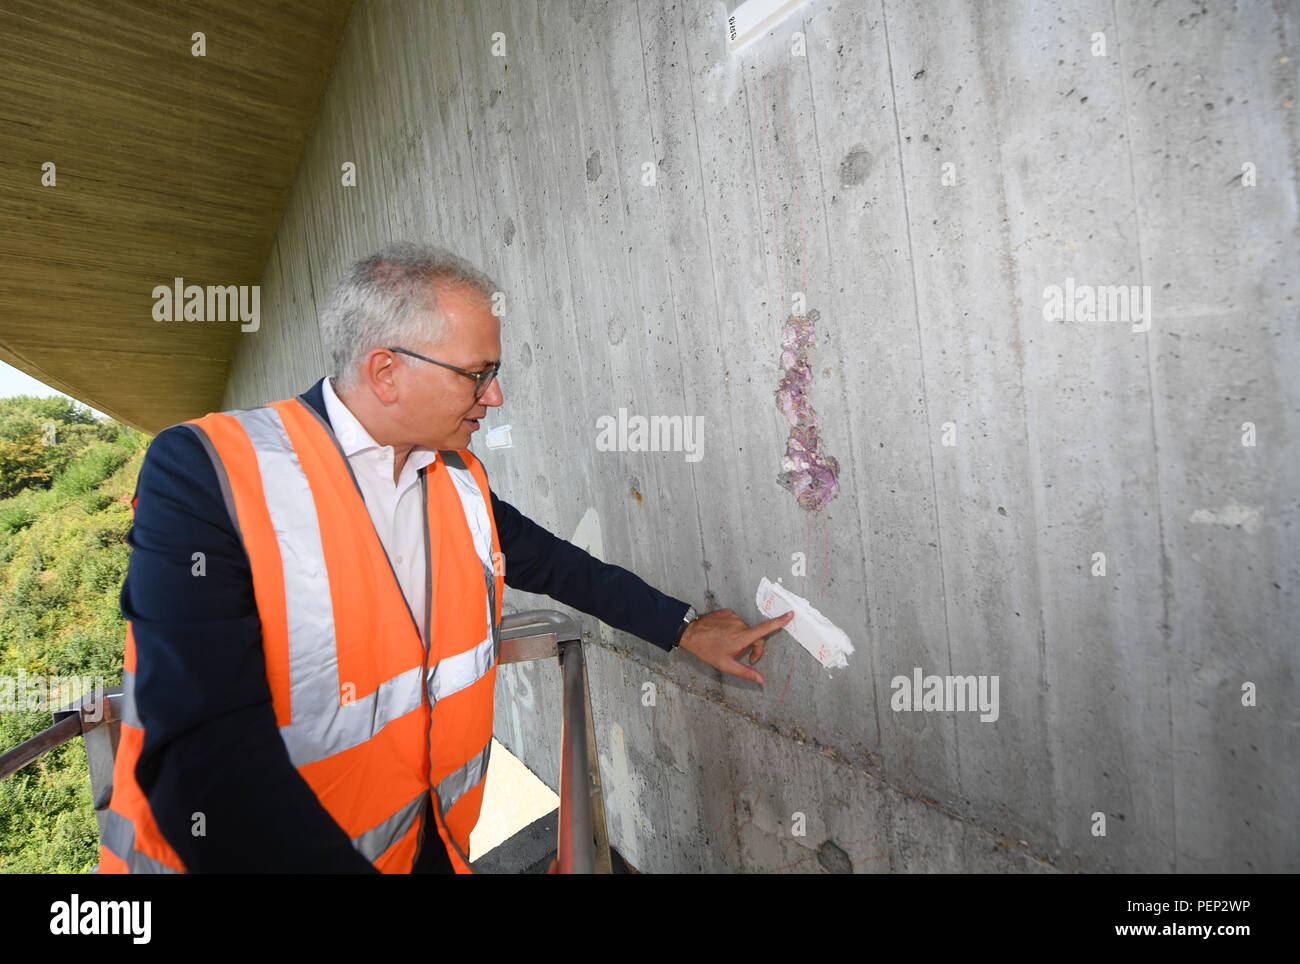 Wiesbaden, Germany. 16th Aug, 2018. Tarek Al-Wazir (Alliance 90/The Greens), Minister of Transport of the State of Hesse, inspects a spot with a crack during a press event at the Salzbach Valley Bridge (Autobahn A66) in Wiesbaden. Hessen Mobil uses the bridge as an example to show how the condition of a bridge is checked. Credit: Arne Dedert/dpa/Alamy Live News - Stock Image